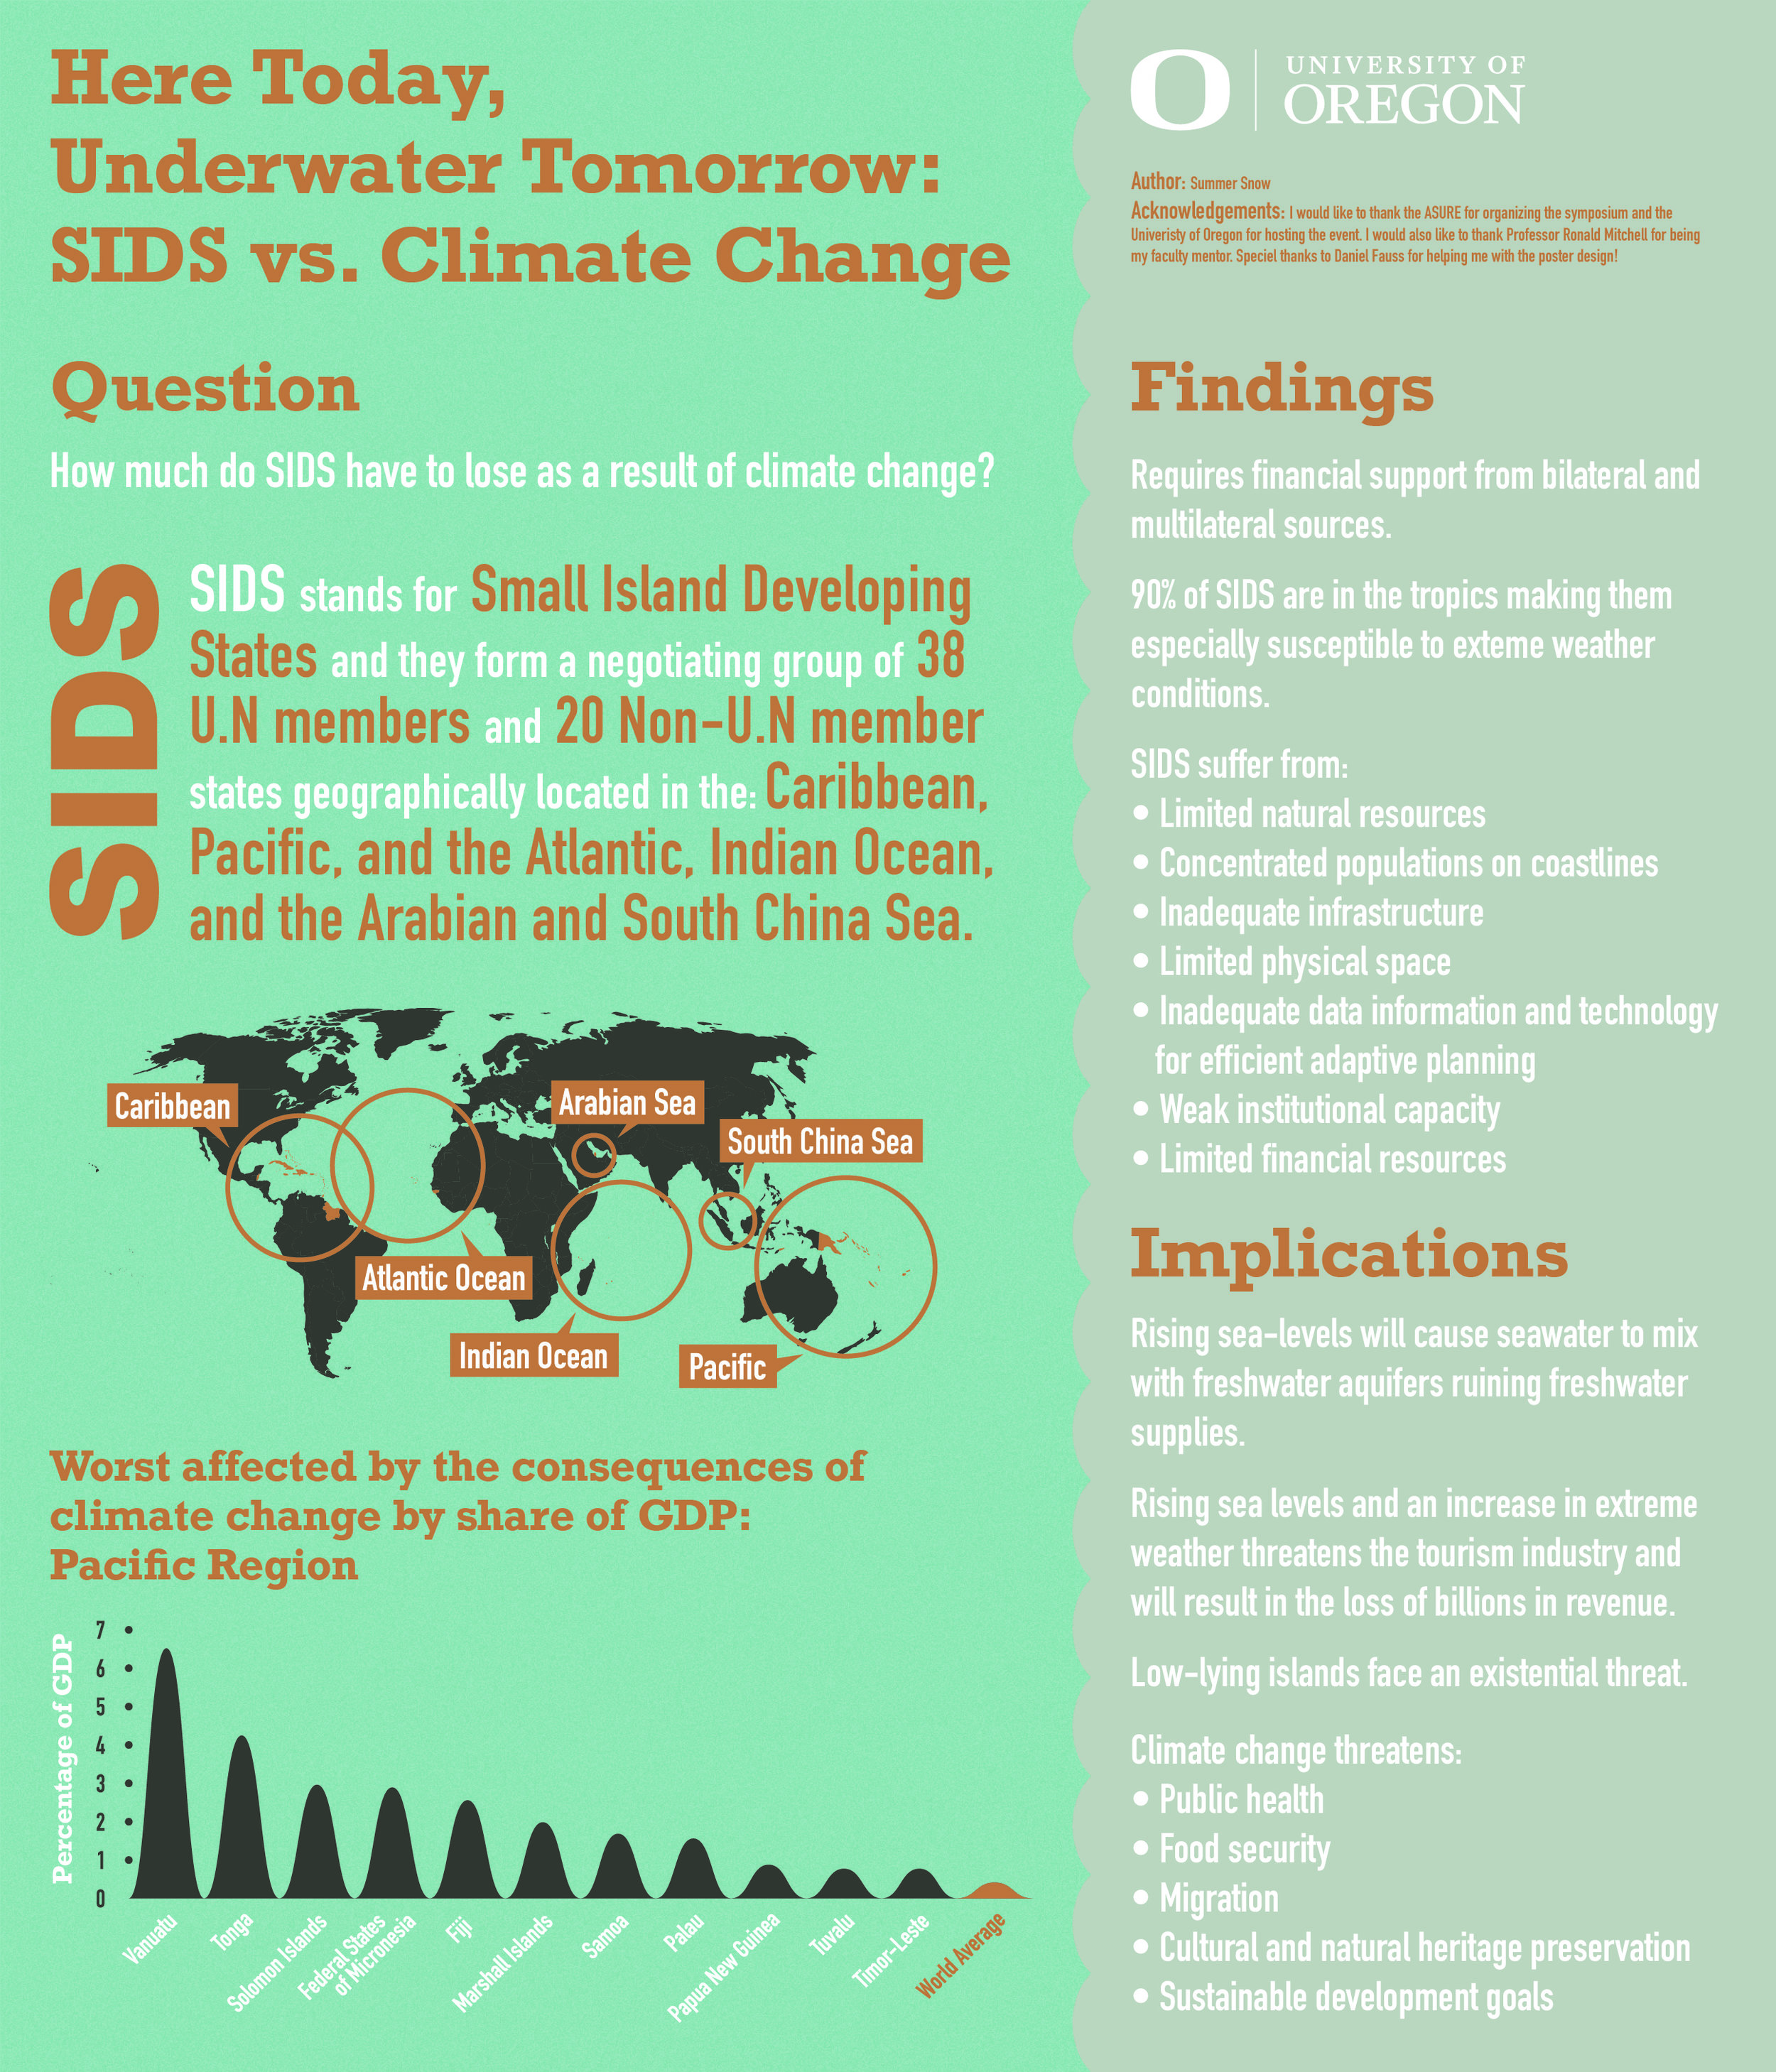 "Sources:    UNFCCC. ""Climate Change Small Island Developing States.""  Https://Unfccc.int , 2015, pp. 1–32., unfccc.int/resource/docs/publications/cc_sids.pdf.    UN-OHRLLS. ""SMALL ISLAND DEVELOPING STATES IN NUMBERS.""  Climate Change Edition 2015 , 2015, pp. 1–44., sustainabledevelopment.un.org/content/documents/2189SIDS-IN-NUMBERS-CLIMATE-CHANGE-EDITION_2015.pdf."